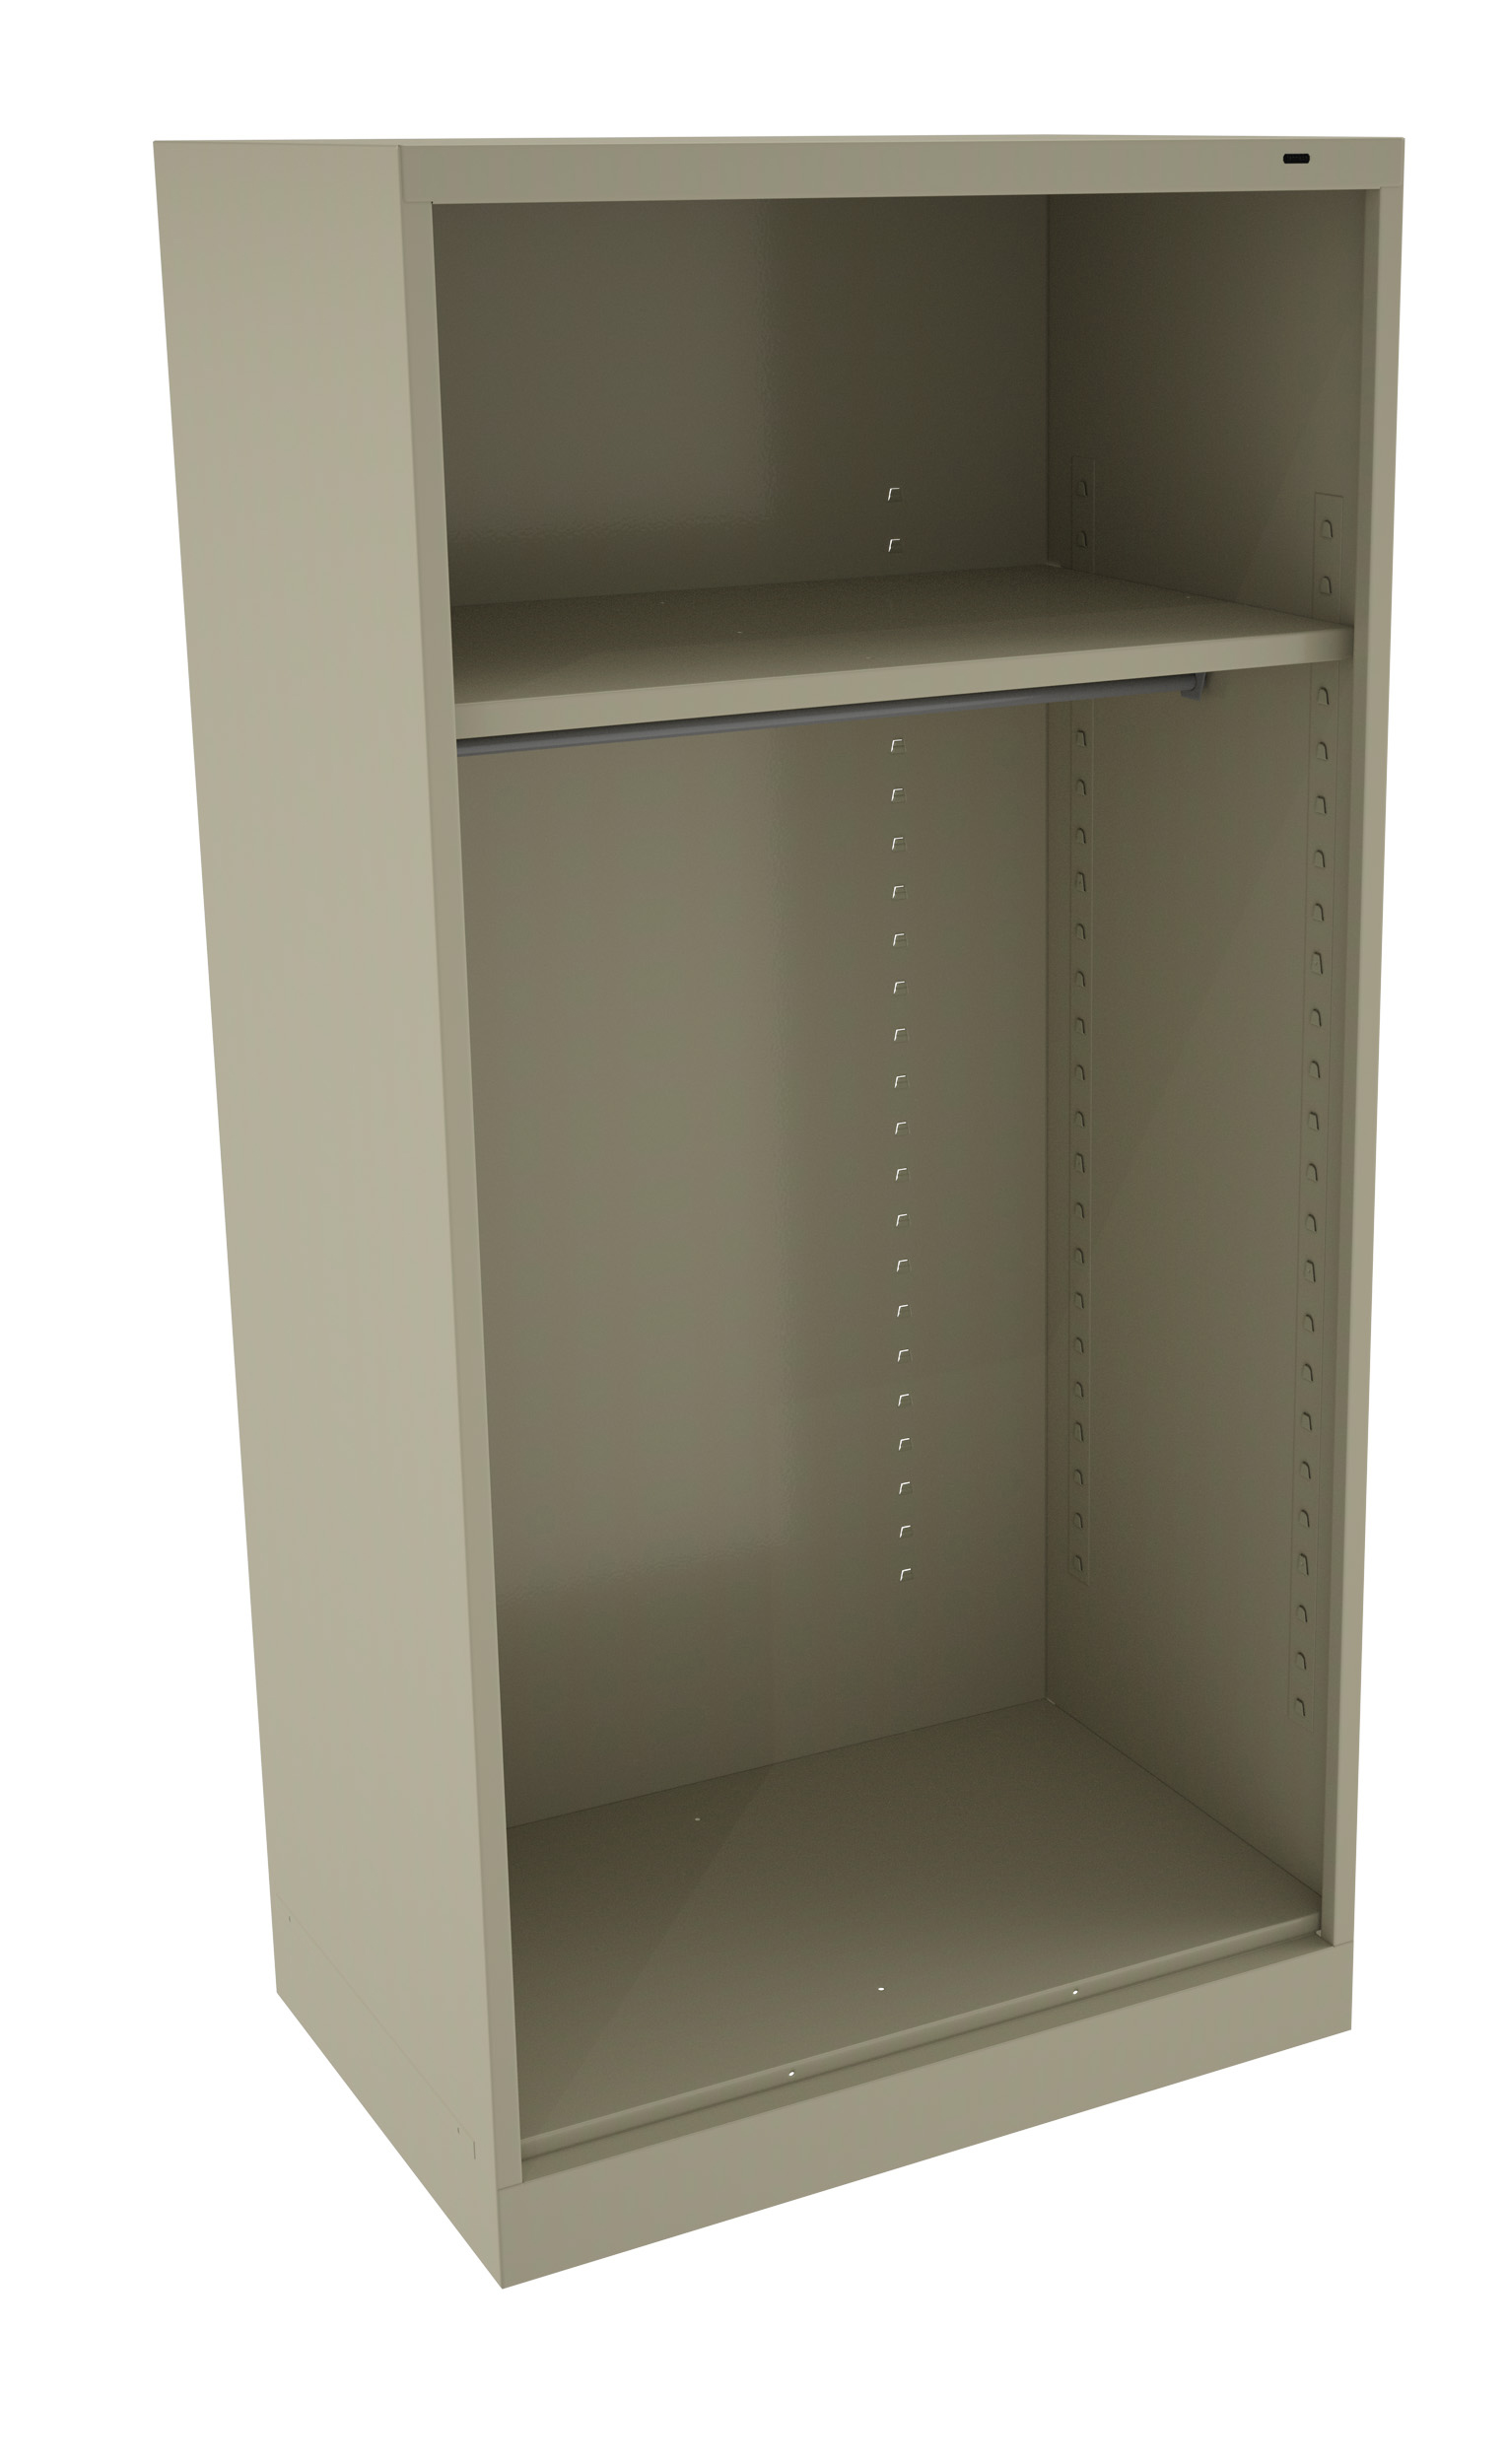 collection furniture cabinet view storage used pictures gorgeous inside metal wardrobe of